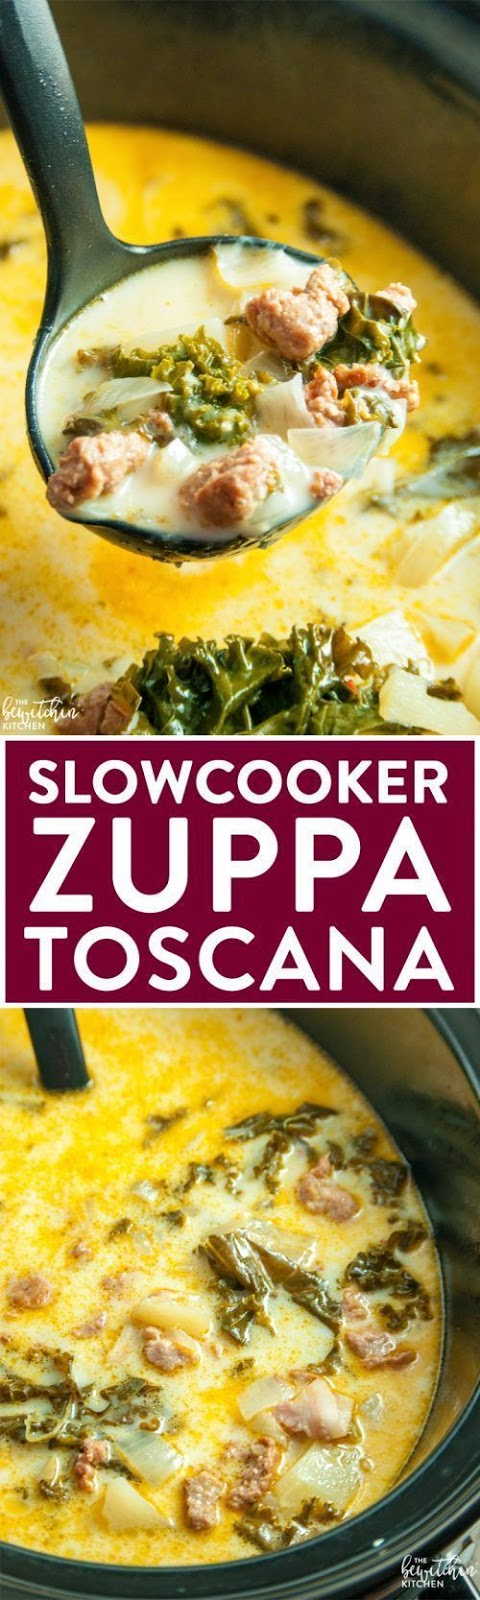 SLOW COOKER ZUPPA TOSCANA RECIPES